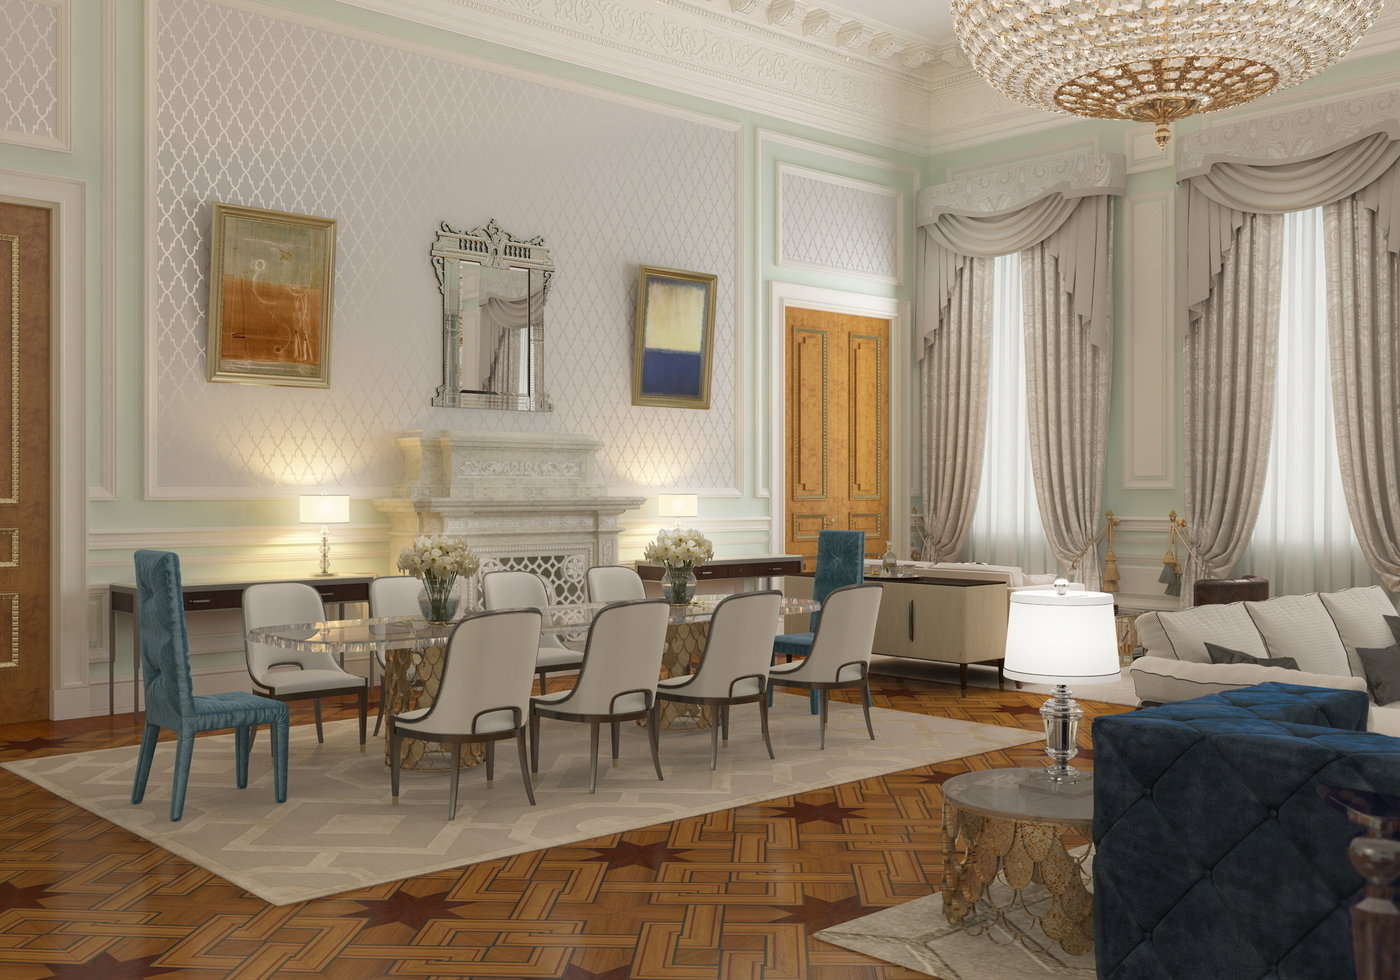 Interior Design Of Presidential Suite Of The Bariatinsky Palace (Modern  Vision Of Interiors) By Darya Girina At Coroflot.com